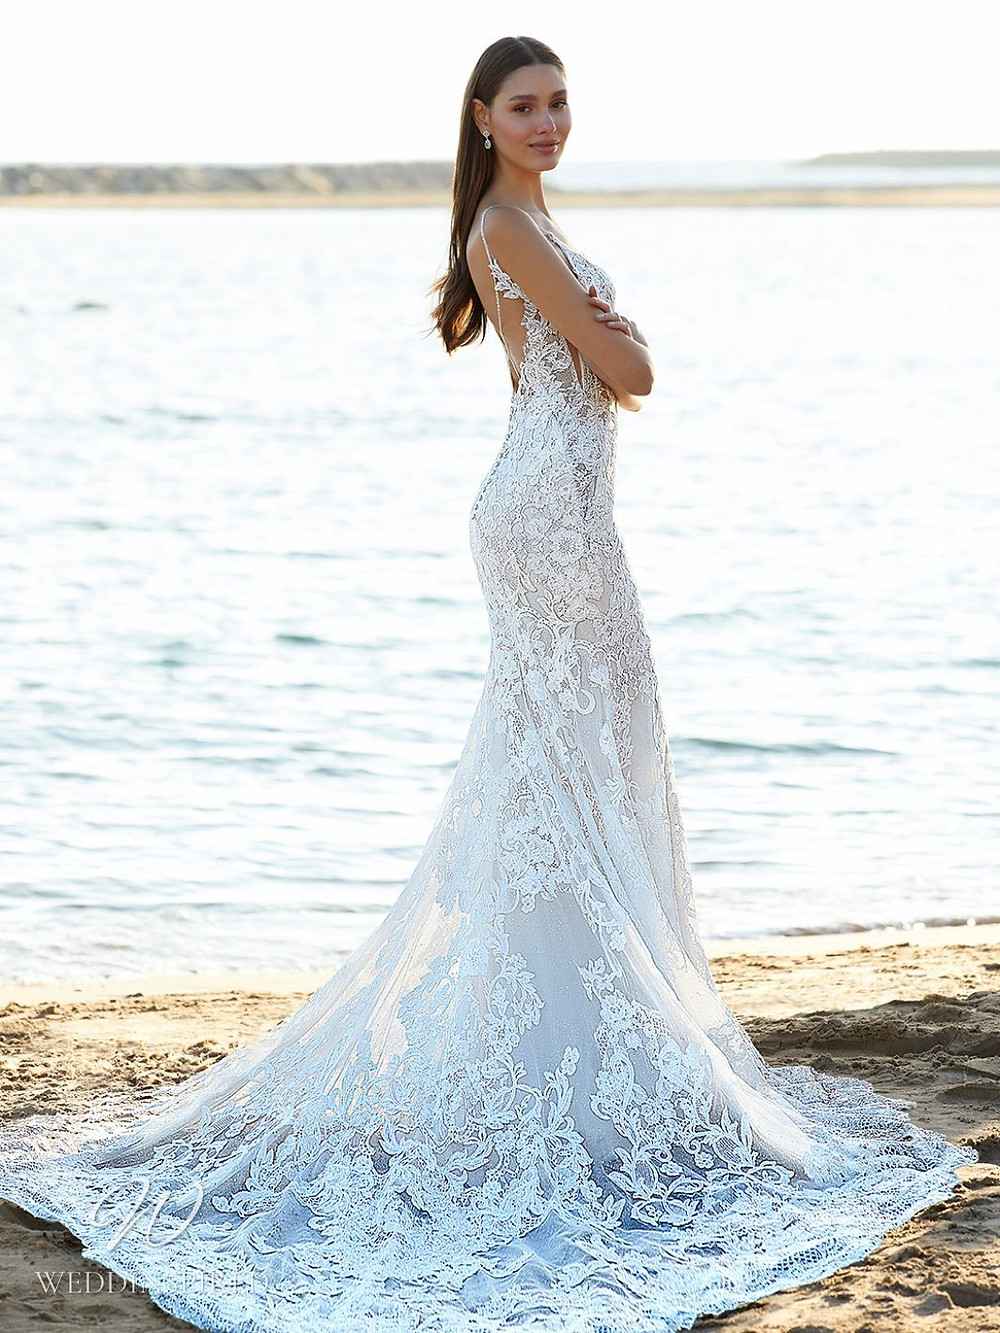 A Blue by Enzoani 2021 lace mermaid wedding dress with straps